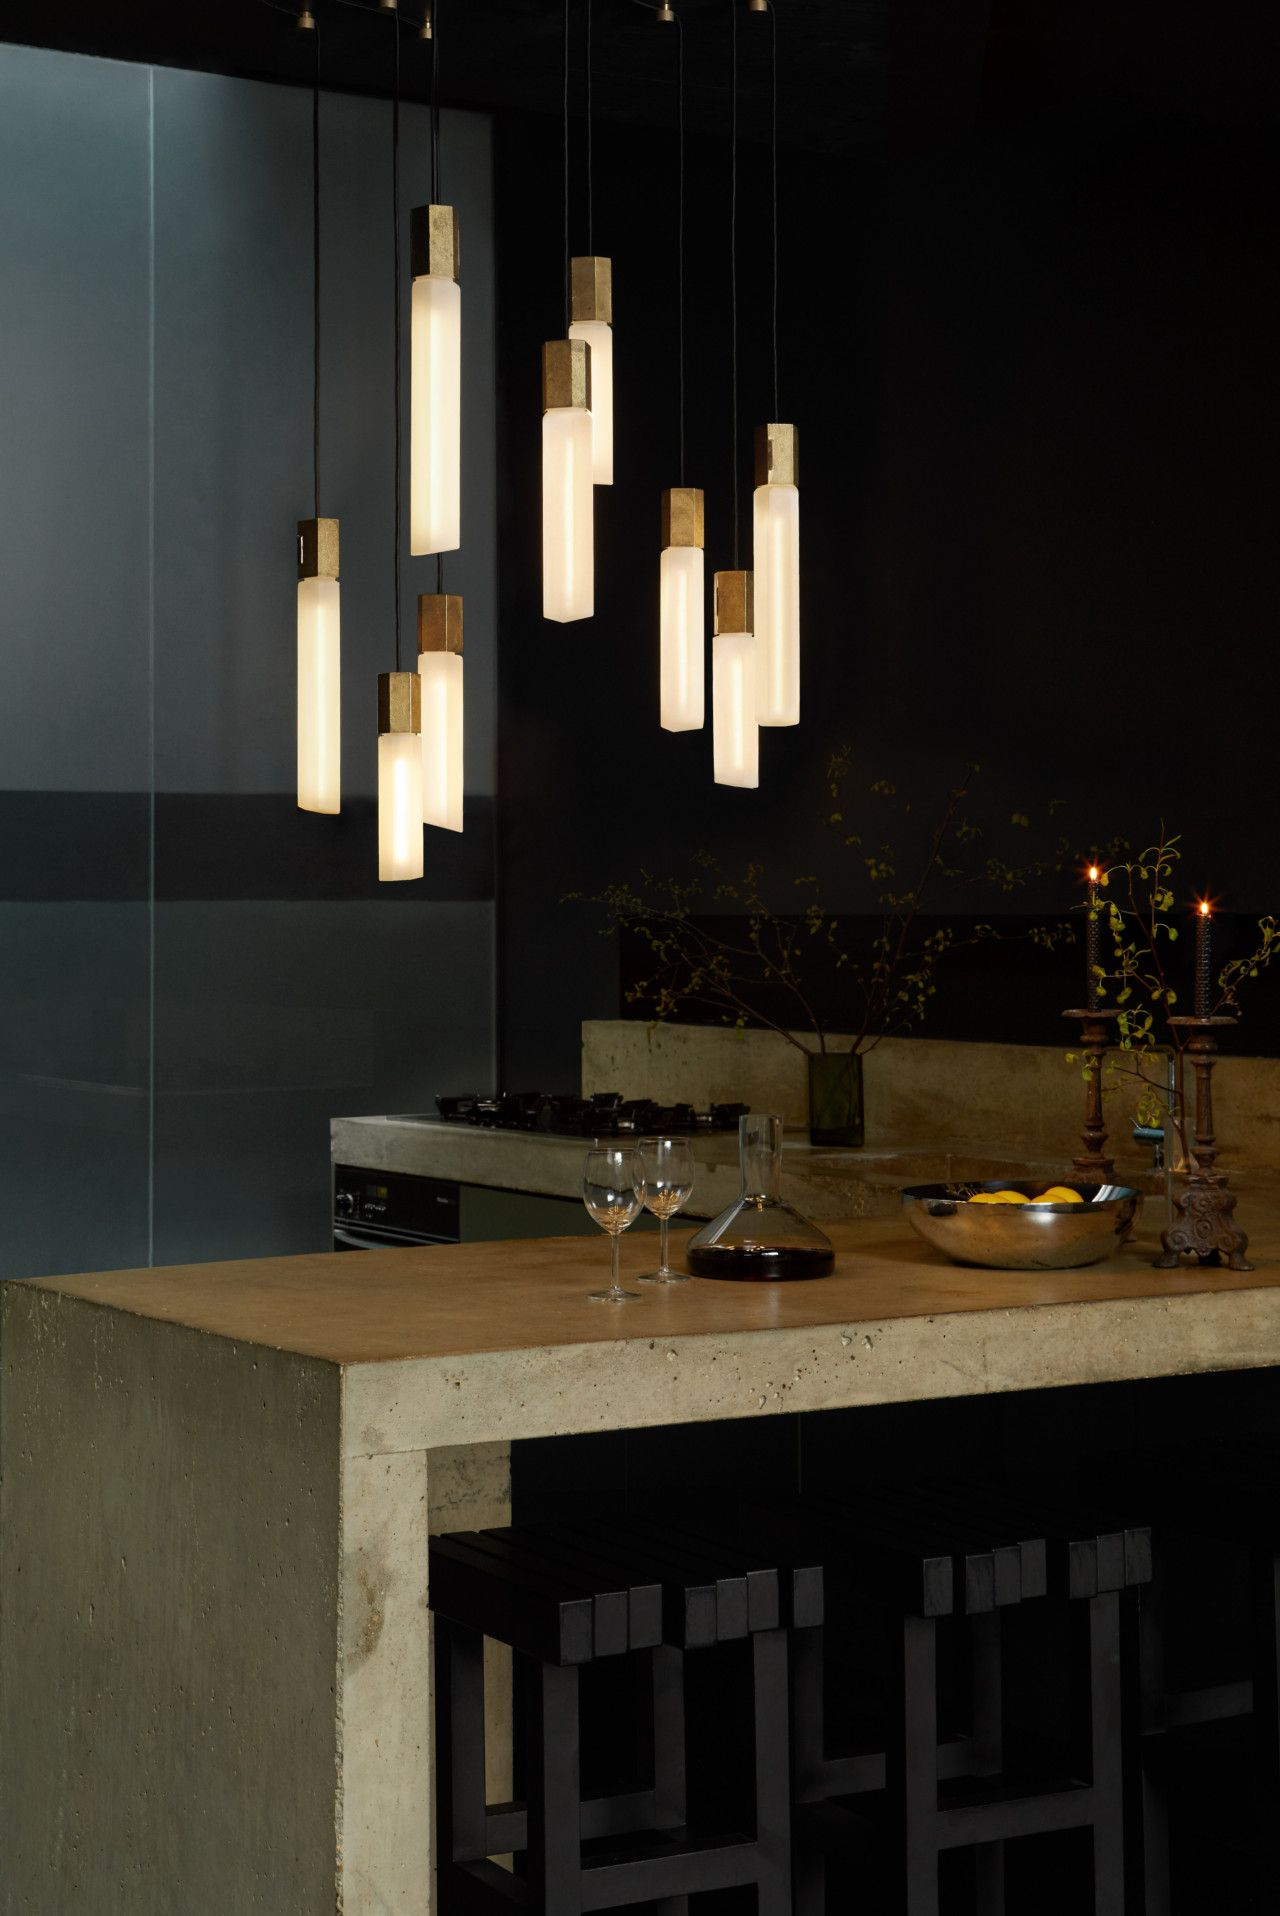 Basalt A Modular Lighting System by Tala Inspired by Rock